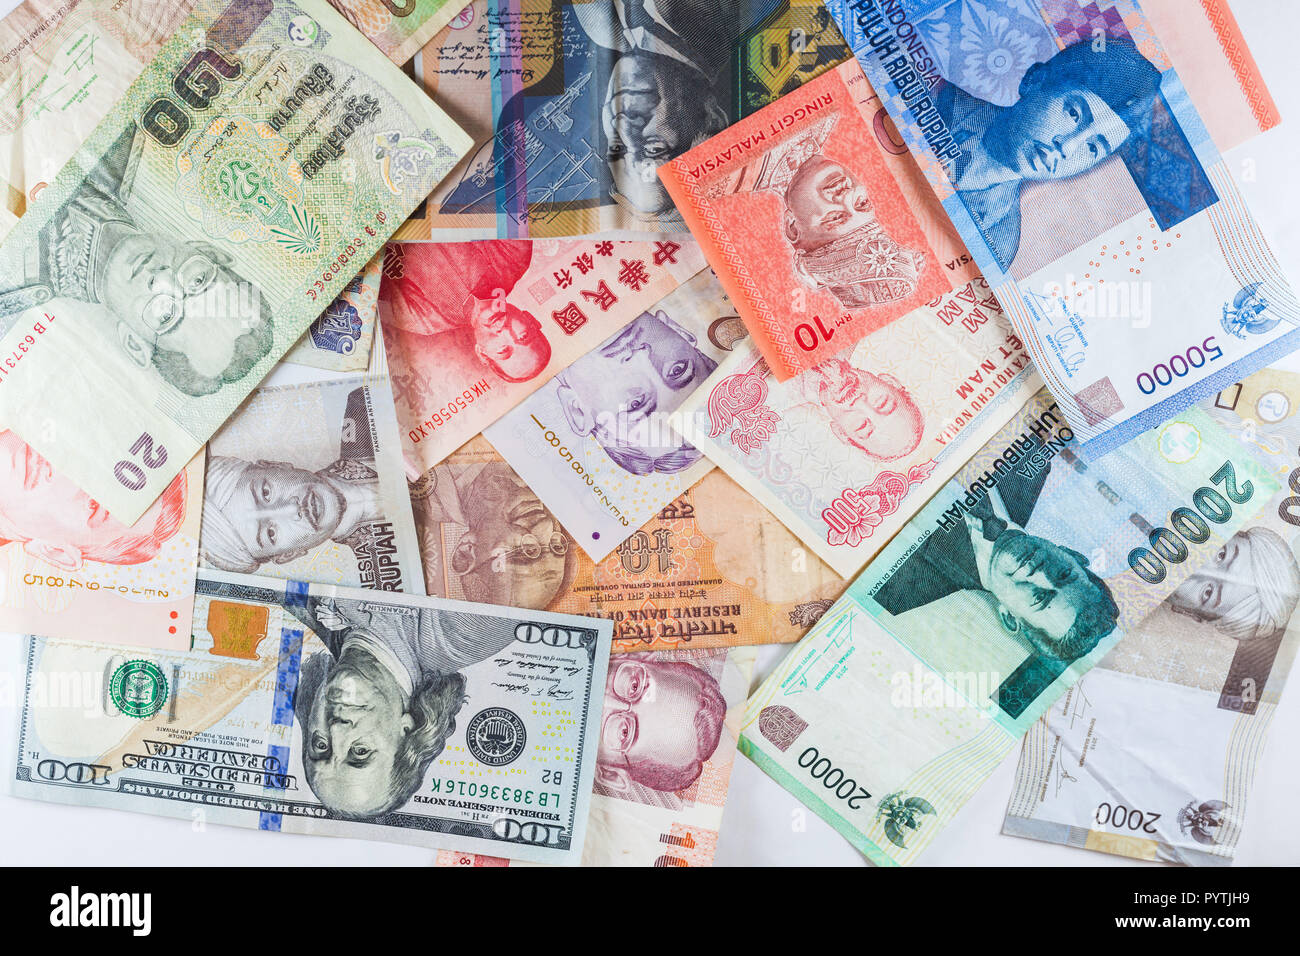 Multiple Currencies banknotes as colorful background showed the global money financial business economy crisis - Stock Image